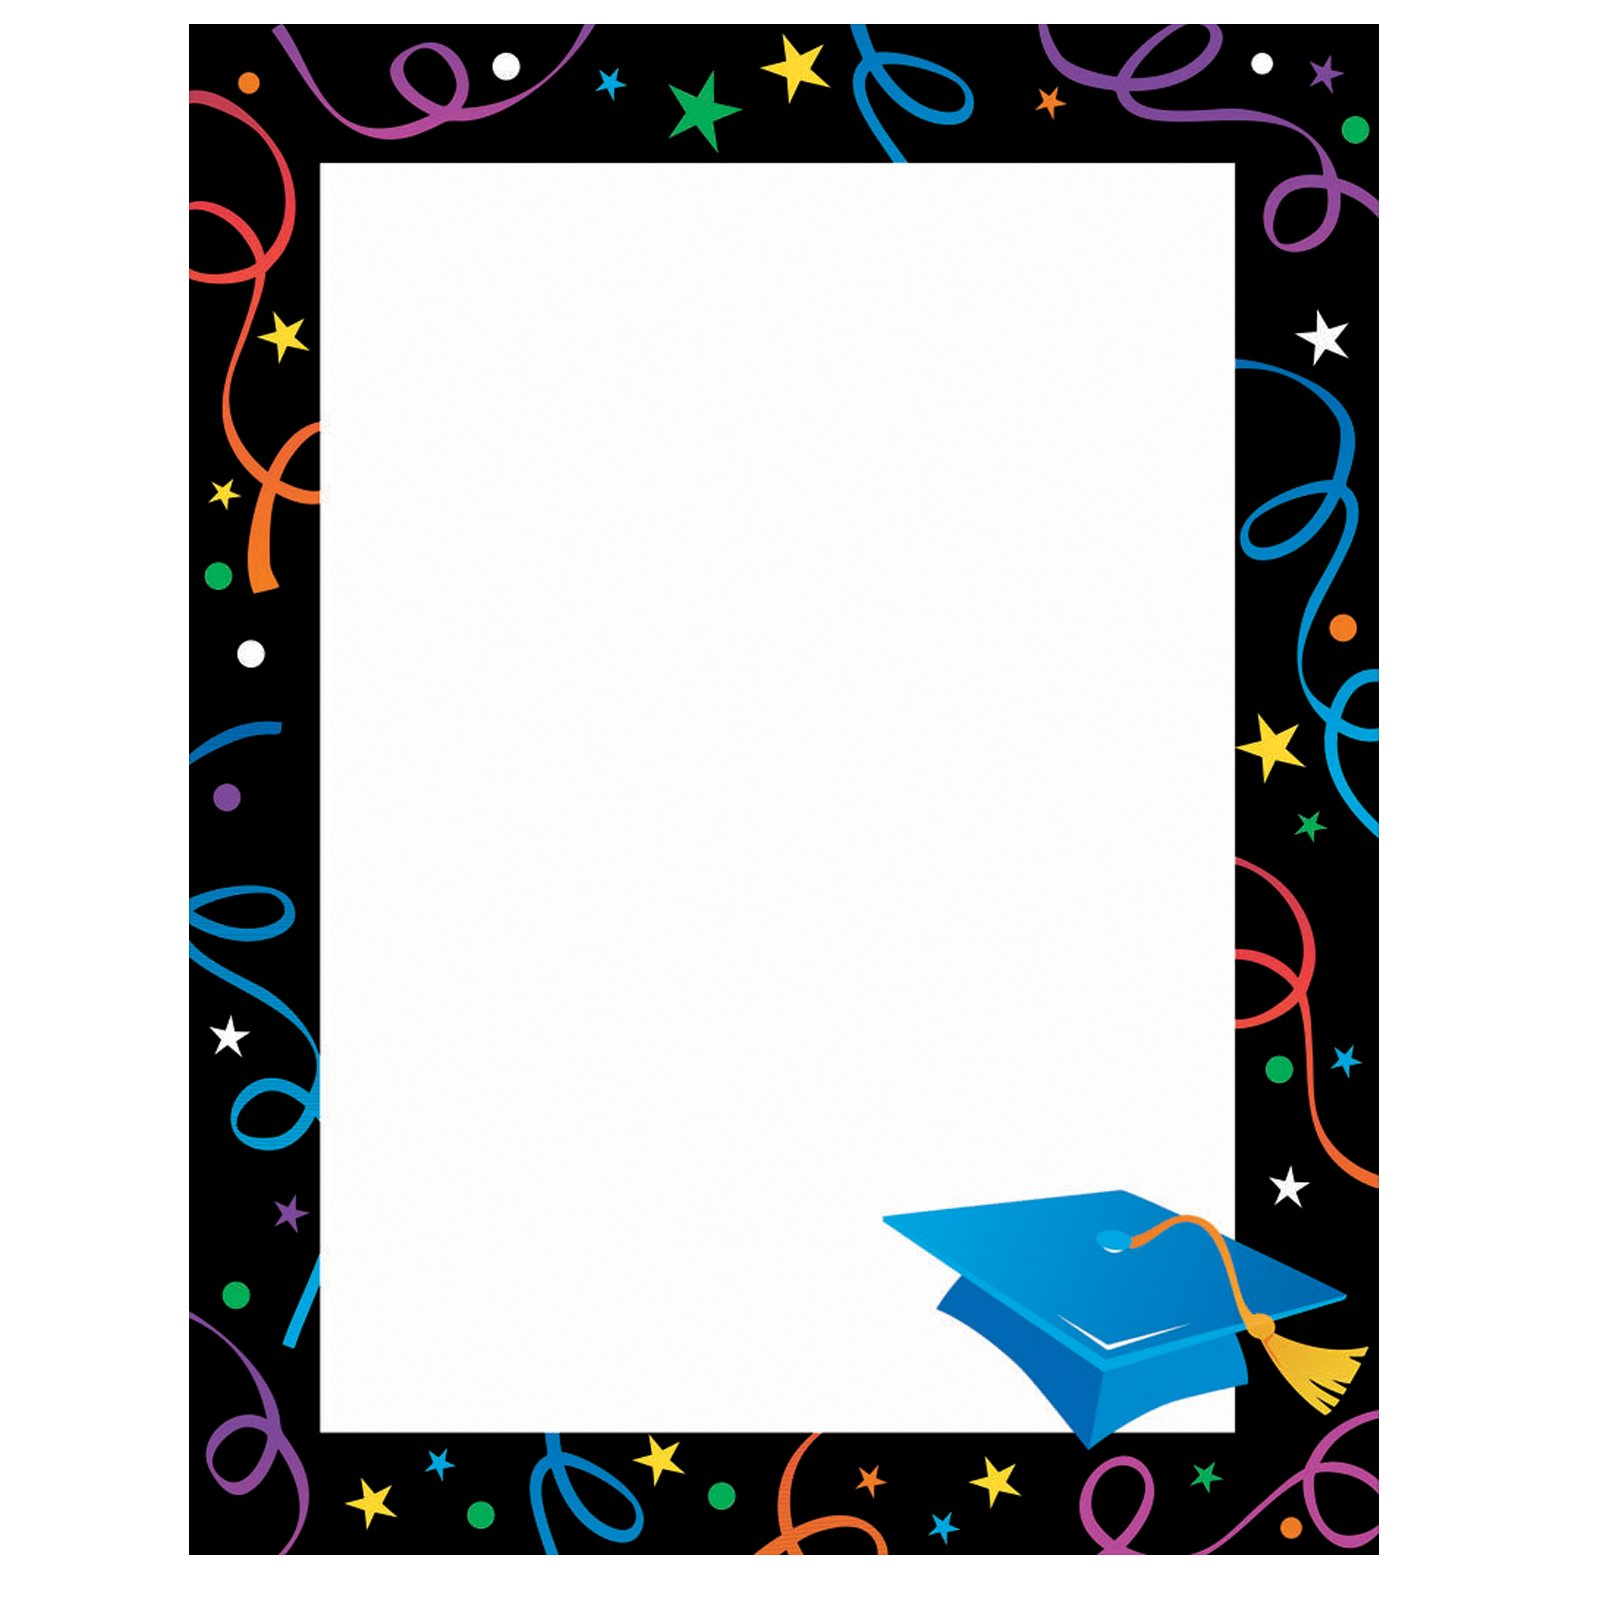 Gold and black graduation border paper clipart clip art black and white Free Graduation Cliparts Borders, Download Free Clip Art, Free Clip ... clip art black and white